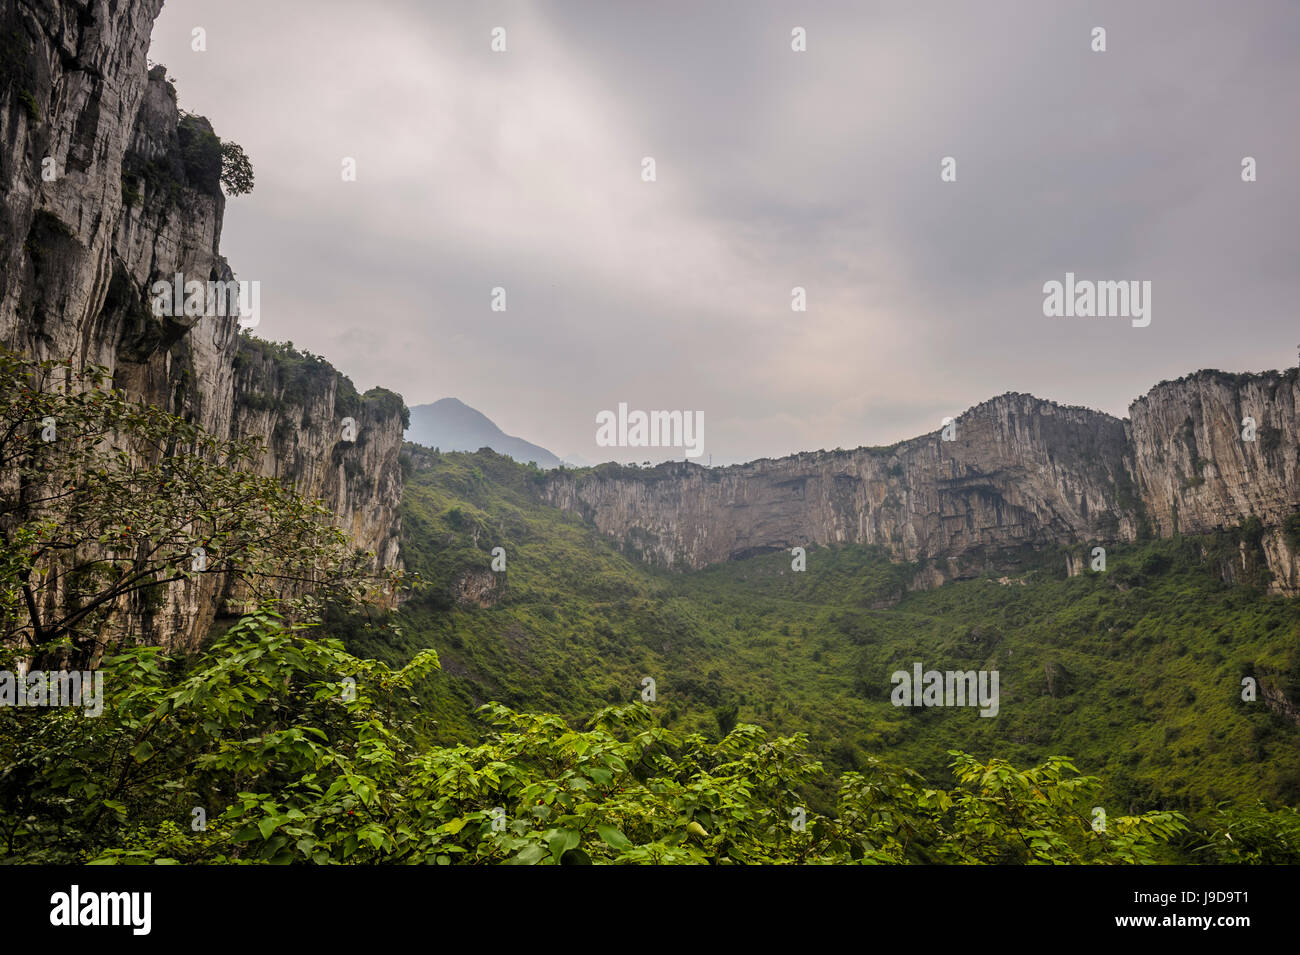 Xinwen Stone Sea Global Geo Park, Sichuan Province, China, Asia - Stock Image